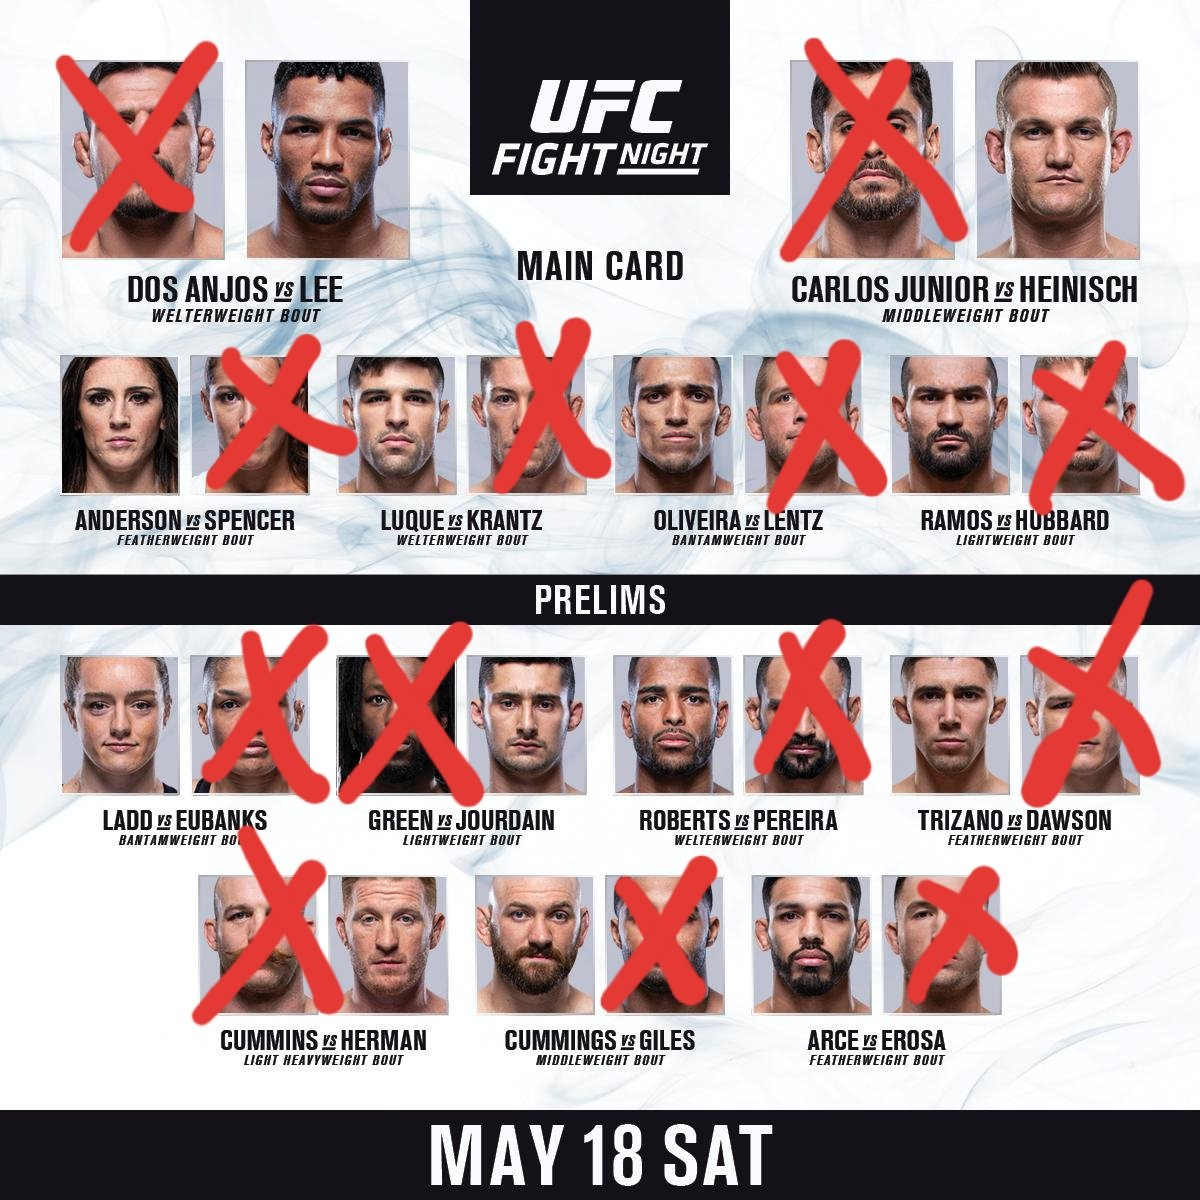 Here are our picks for @UFC Rochester 💪🏼💪🏼 Marc's in Red, Scott's in Blue 🔥🔥 who you got? 👊🏼🏴󠁧󠁢󠁳󠁣󠁴󠁿  #ufc #UFCRochester #UFC239 #UFC238 #UFCFightWeek #Podcast #Podcasting #PodernFamily #mma #newyork #rochester #rdavlee #dosanjosvlee #scotland #scottishmma